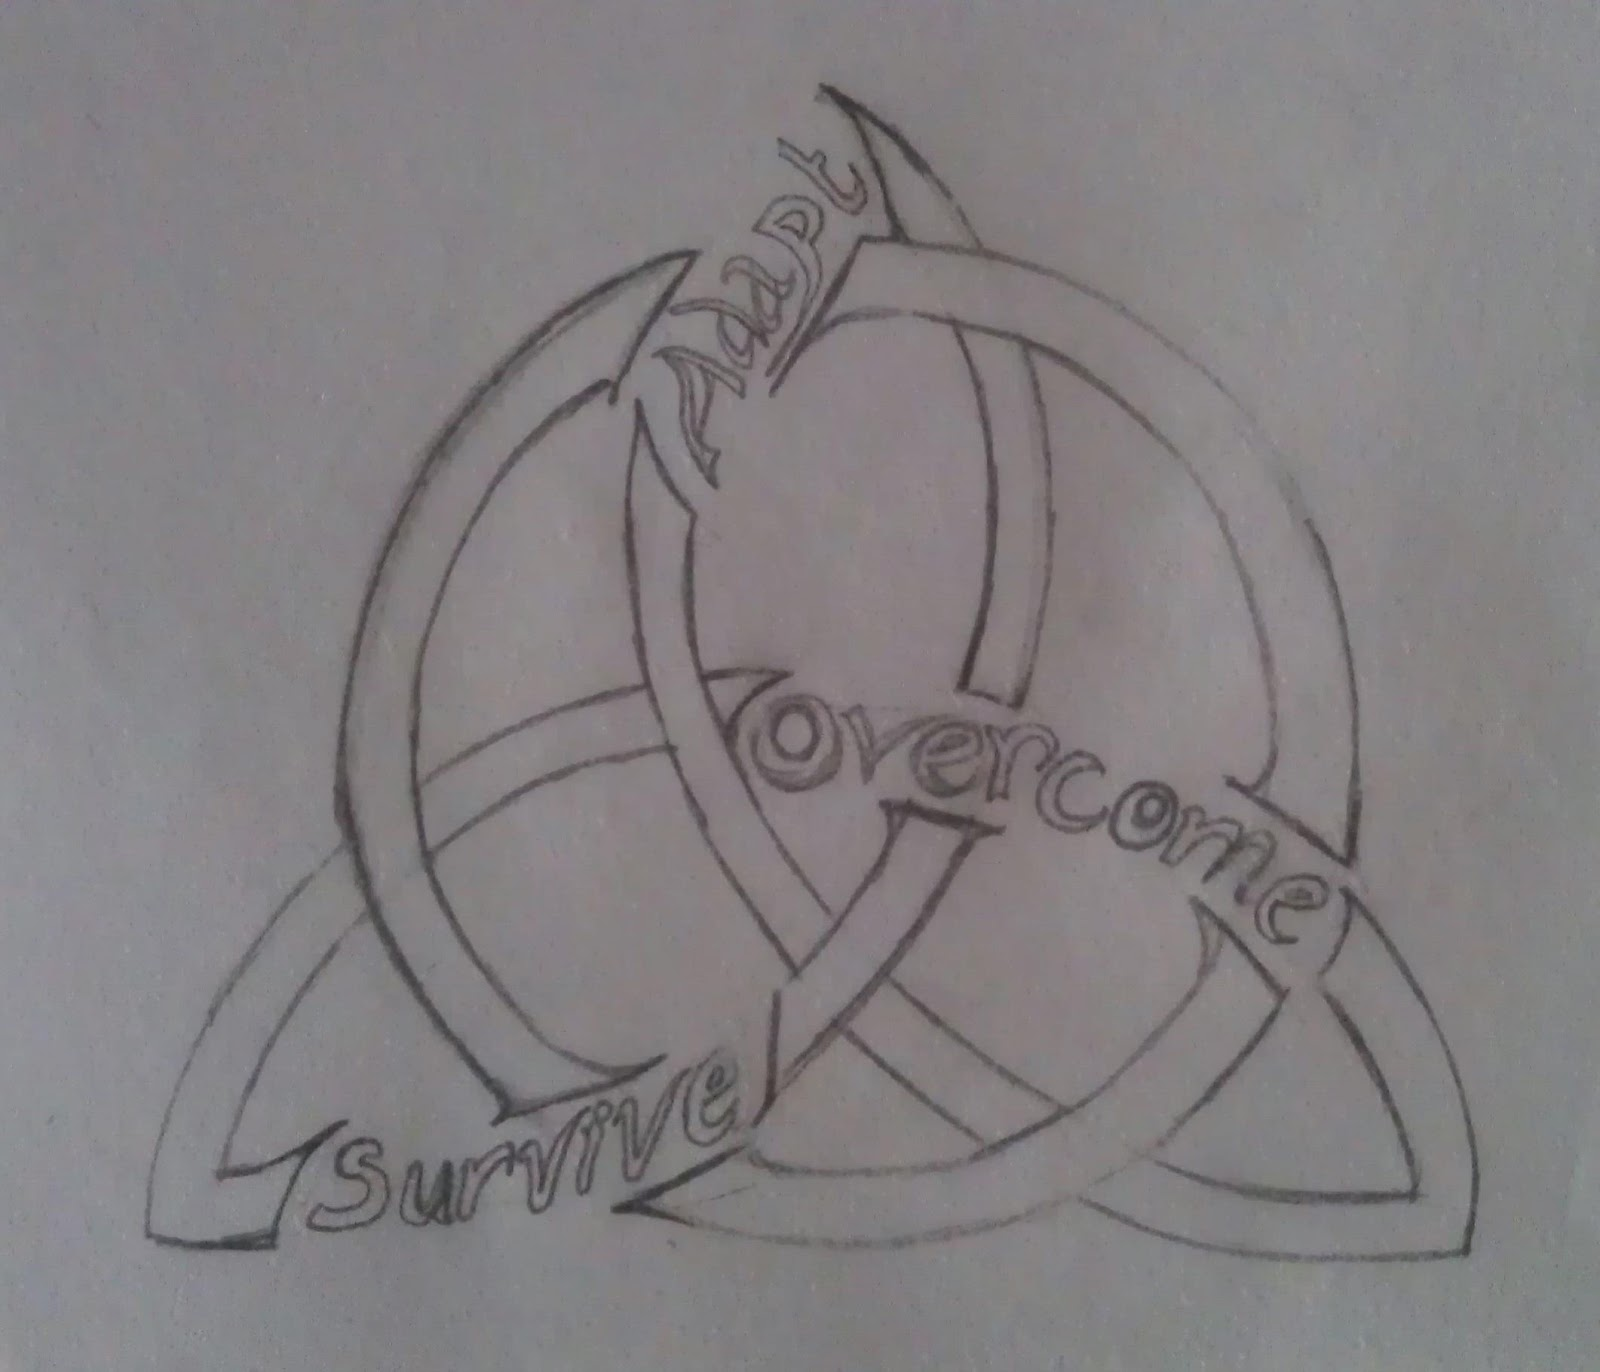 Triquetra Tattoos Designs Ideas And Meaning: Artistic License2: Artistic License2: Tattoo Designs